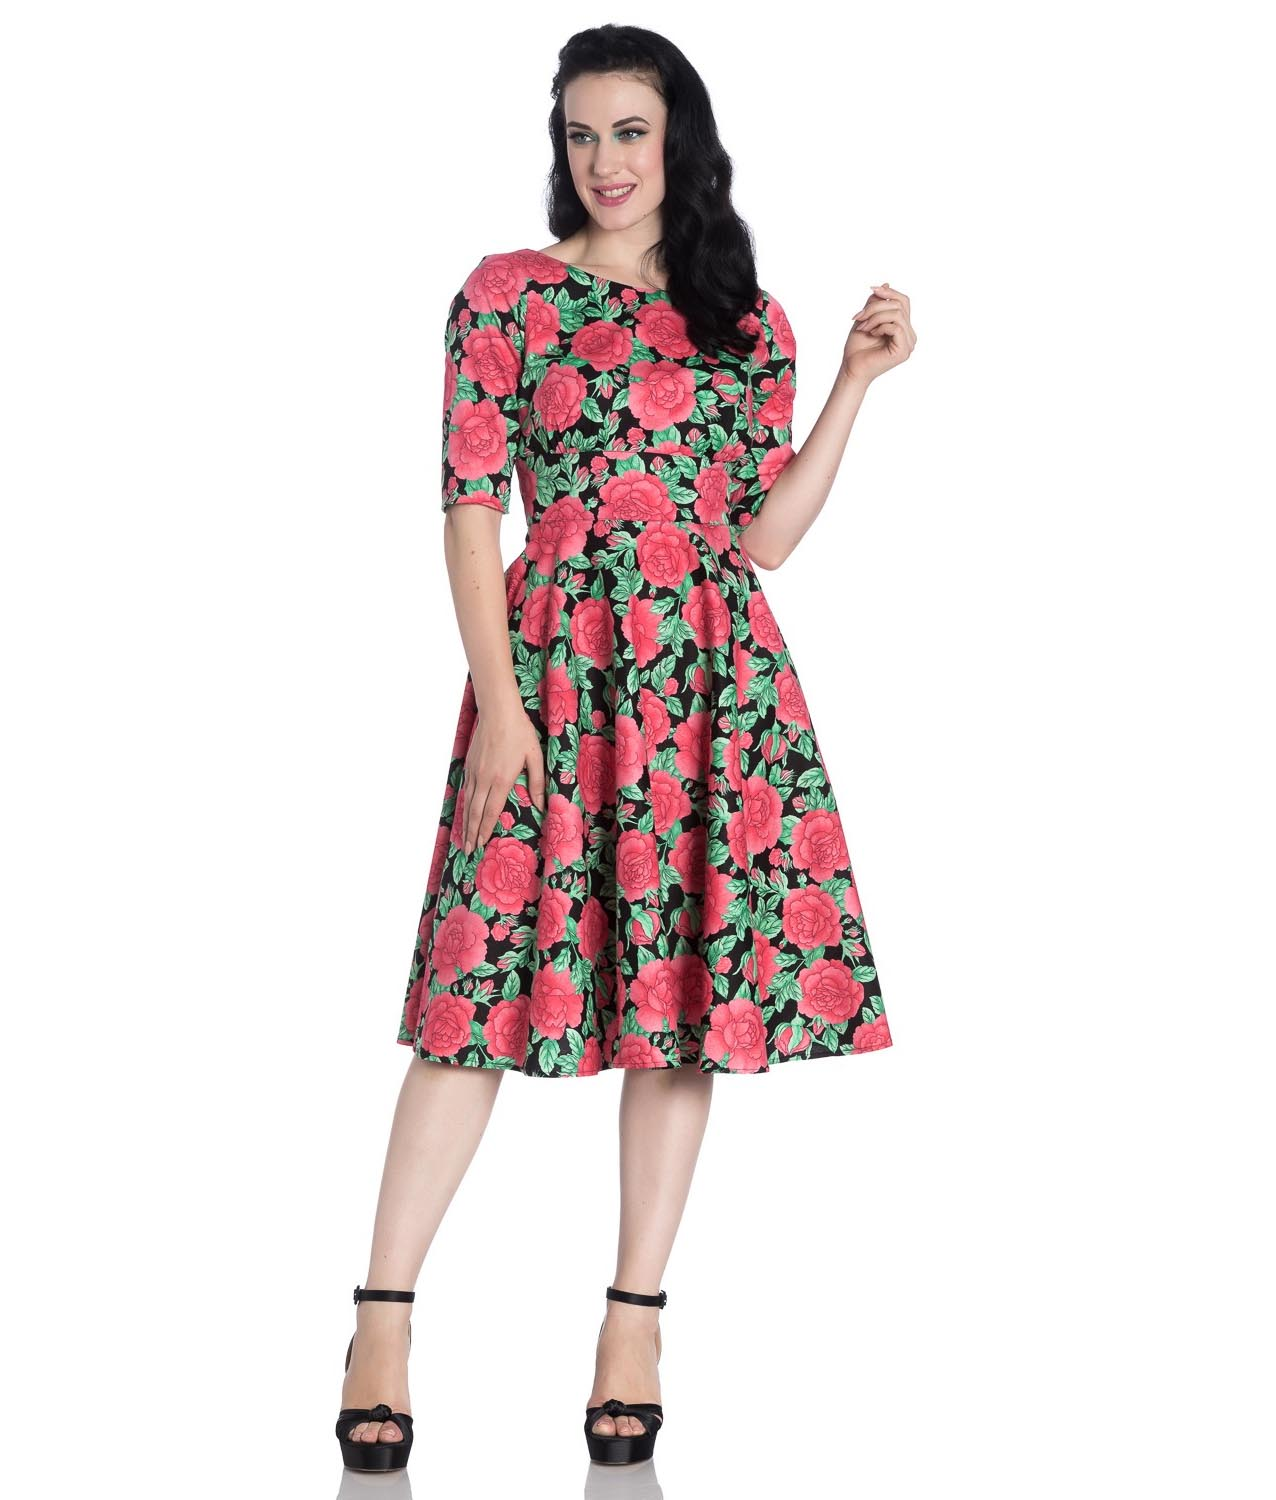 Hell-Bunny-40s-50s-Black-Pin-Up-Vintage-Dress-DARCY-Pink-Roses-All-Sizes thumbnail 15